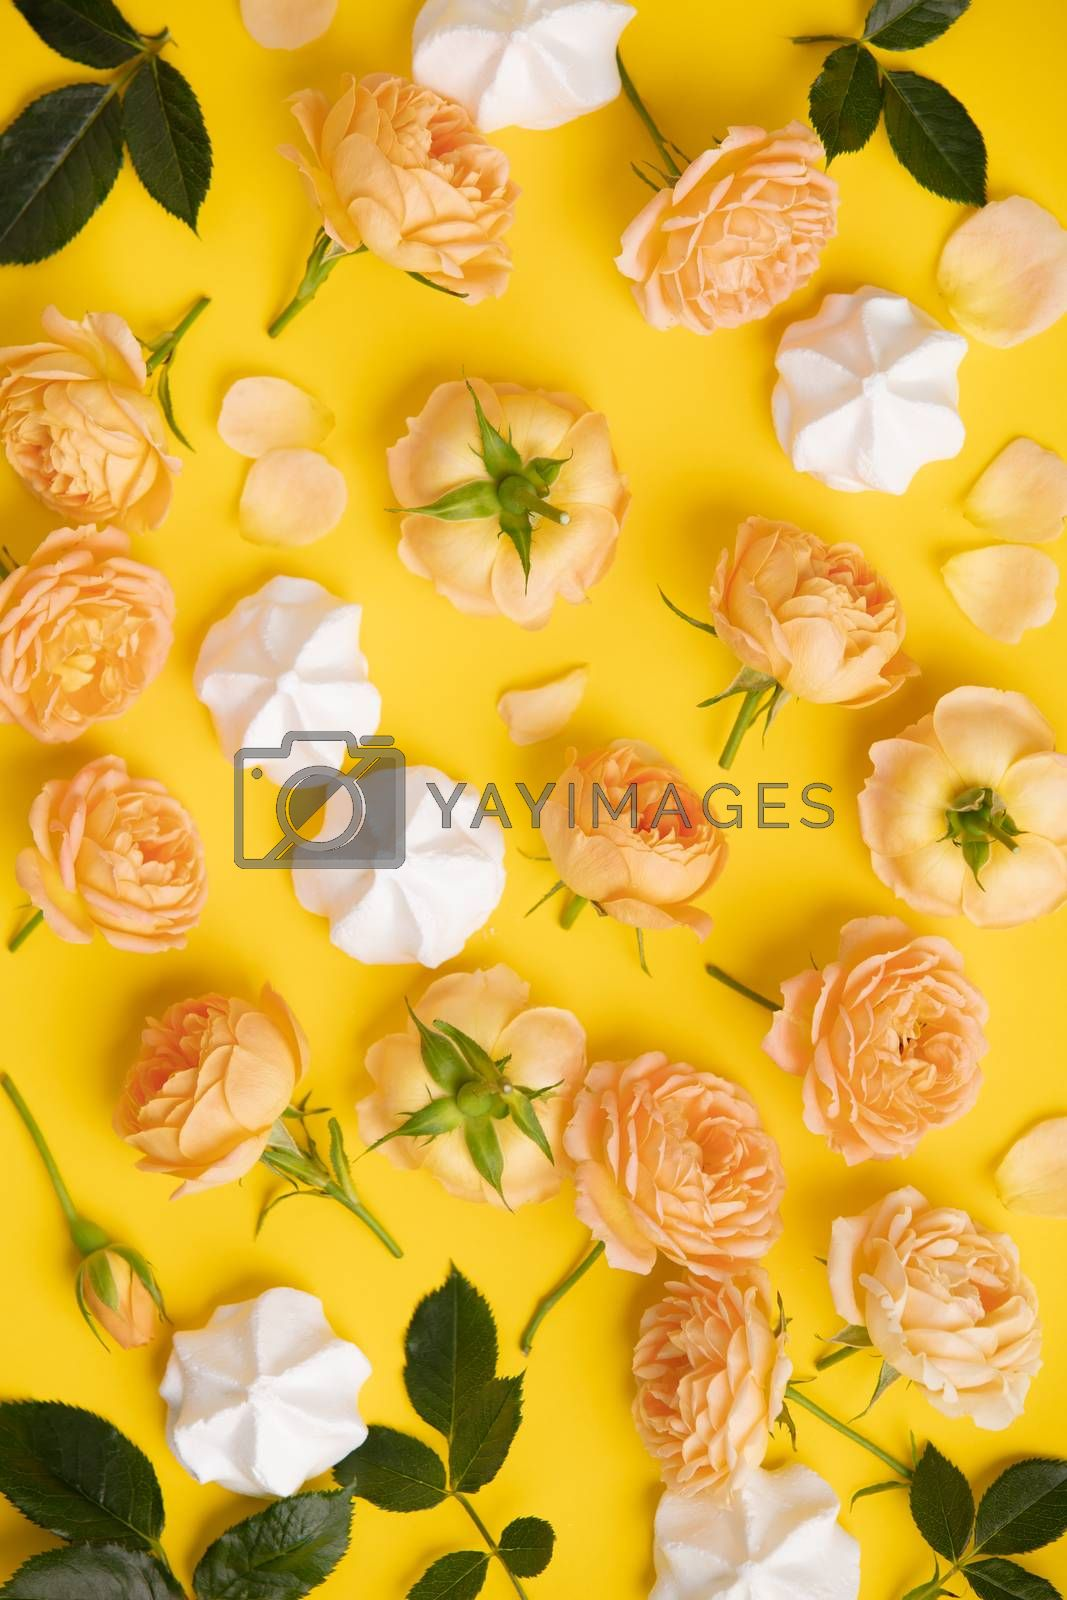 Floral pattern with pink roses and merengues on yellow background, flat lay, vertical composition. Food texture, background and wallpaper